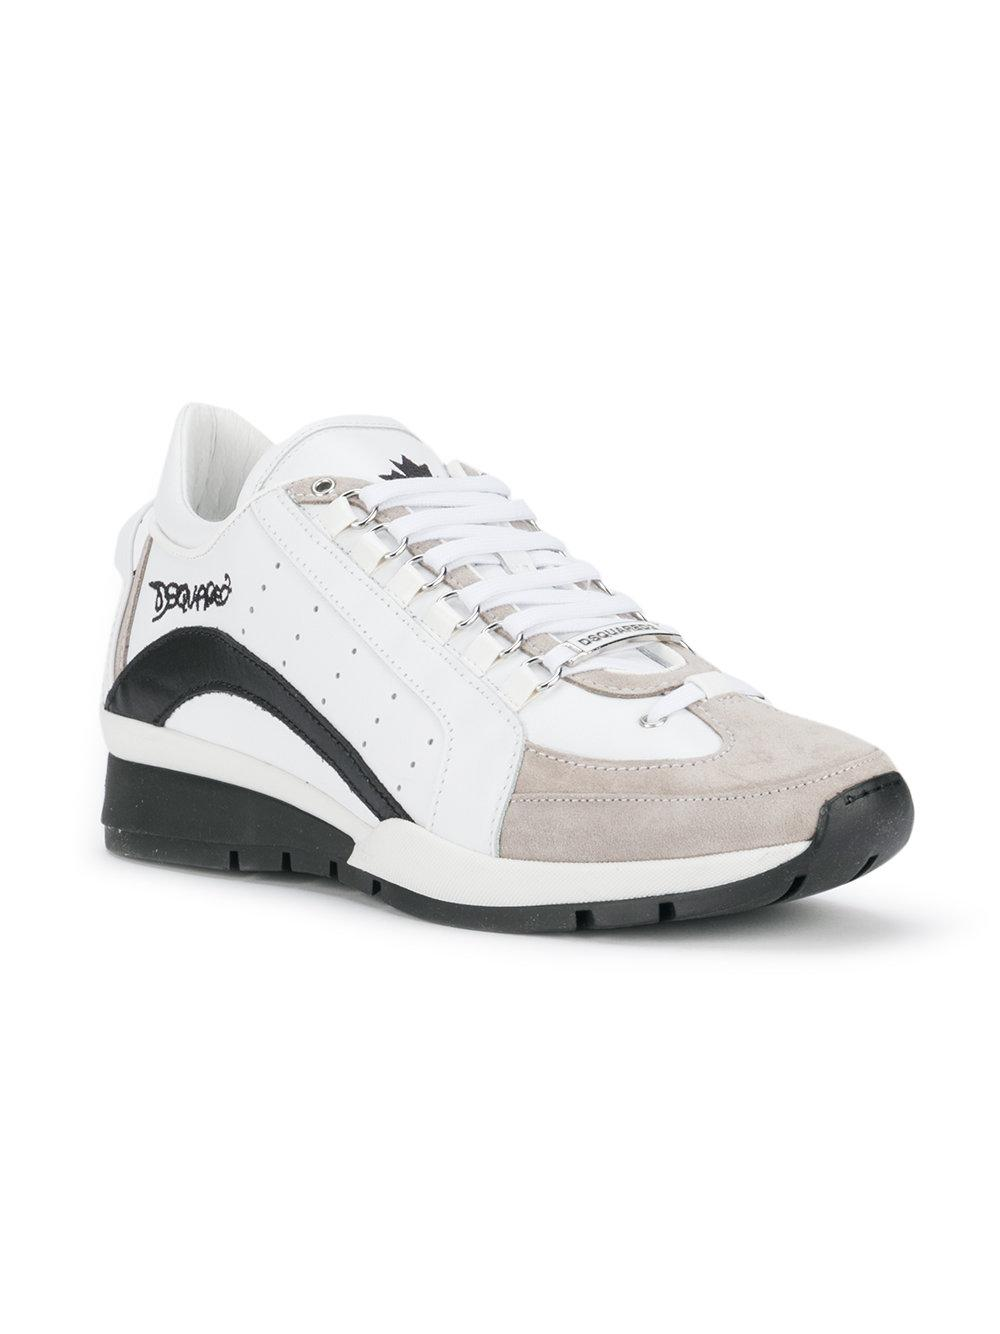 703ecbd274afc Lyst - DSquared² 551 Sneakers in White for Men